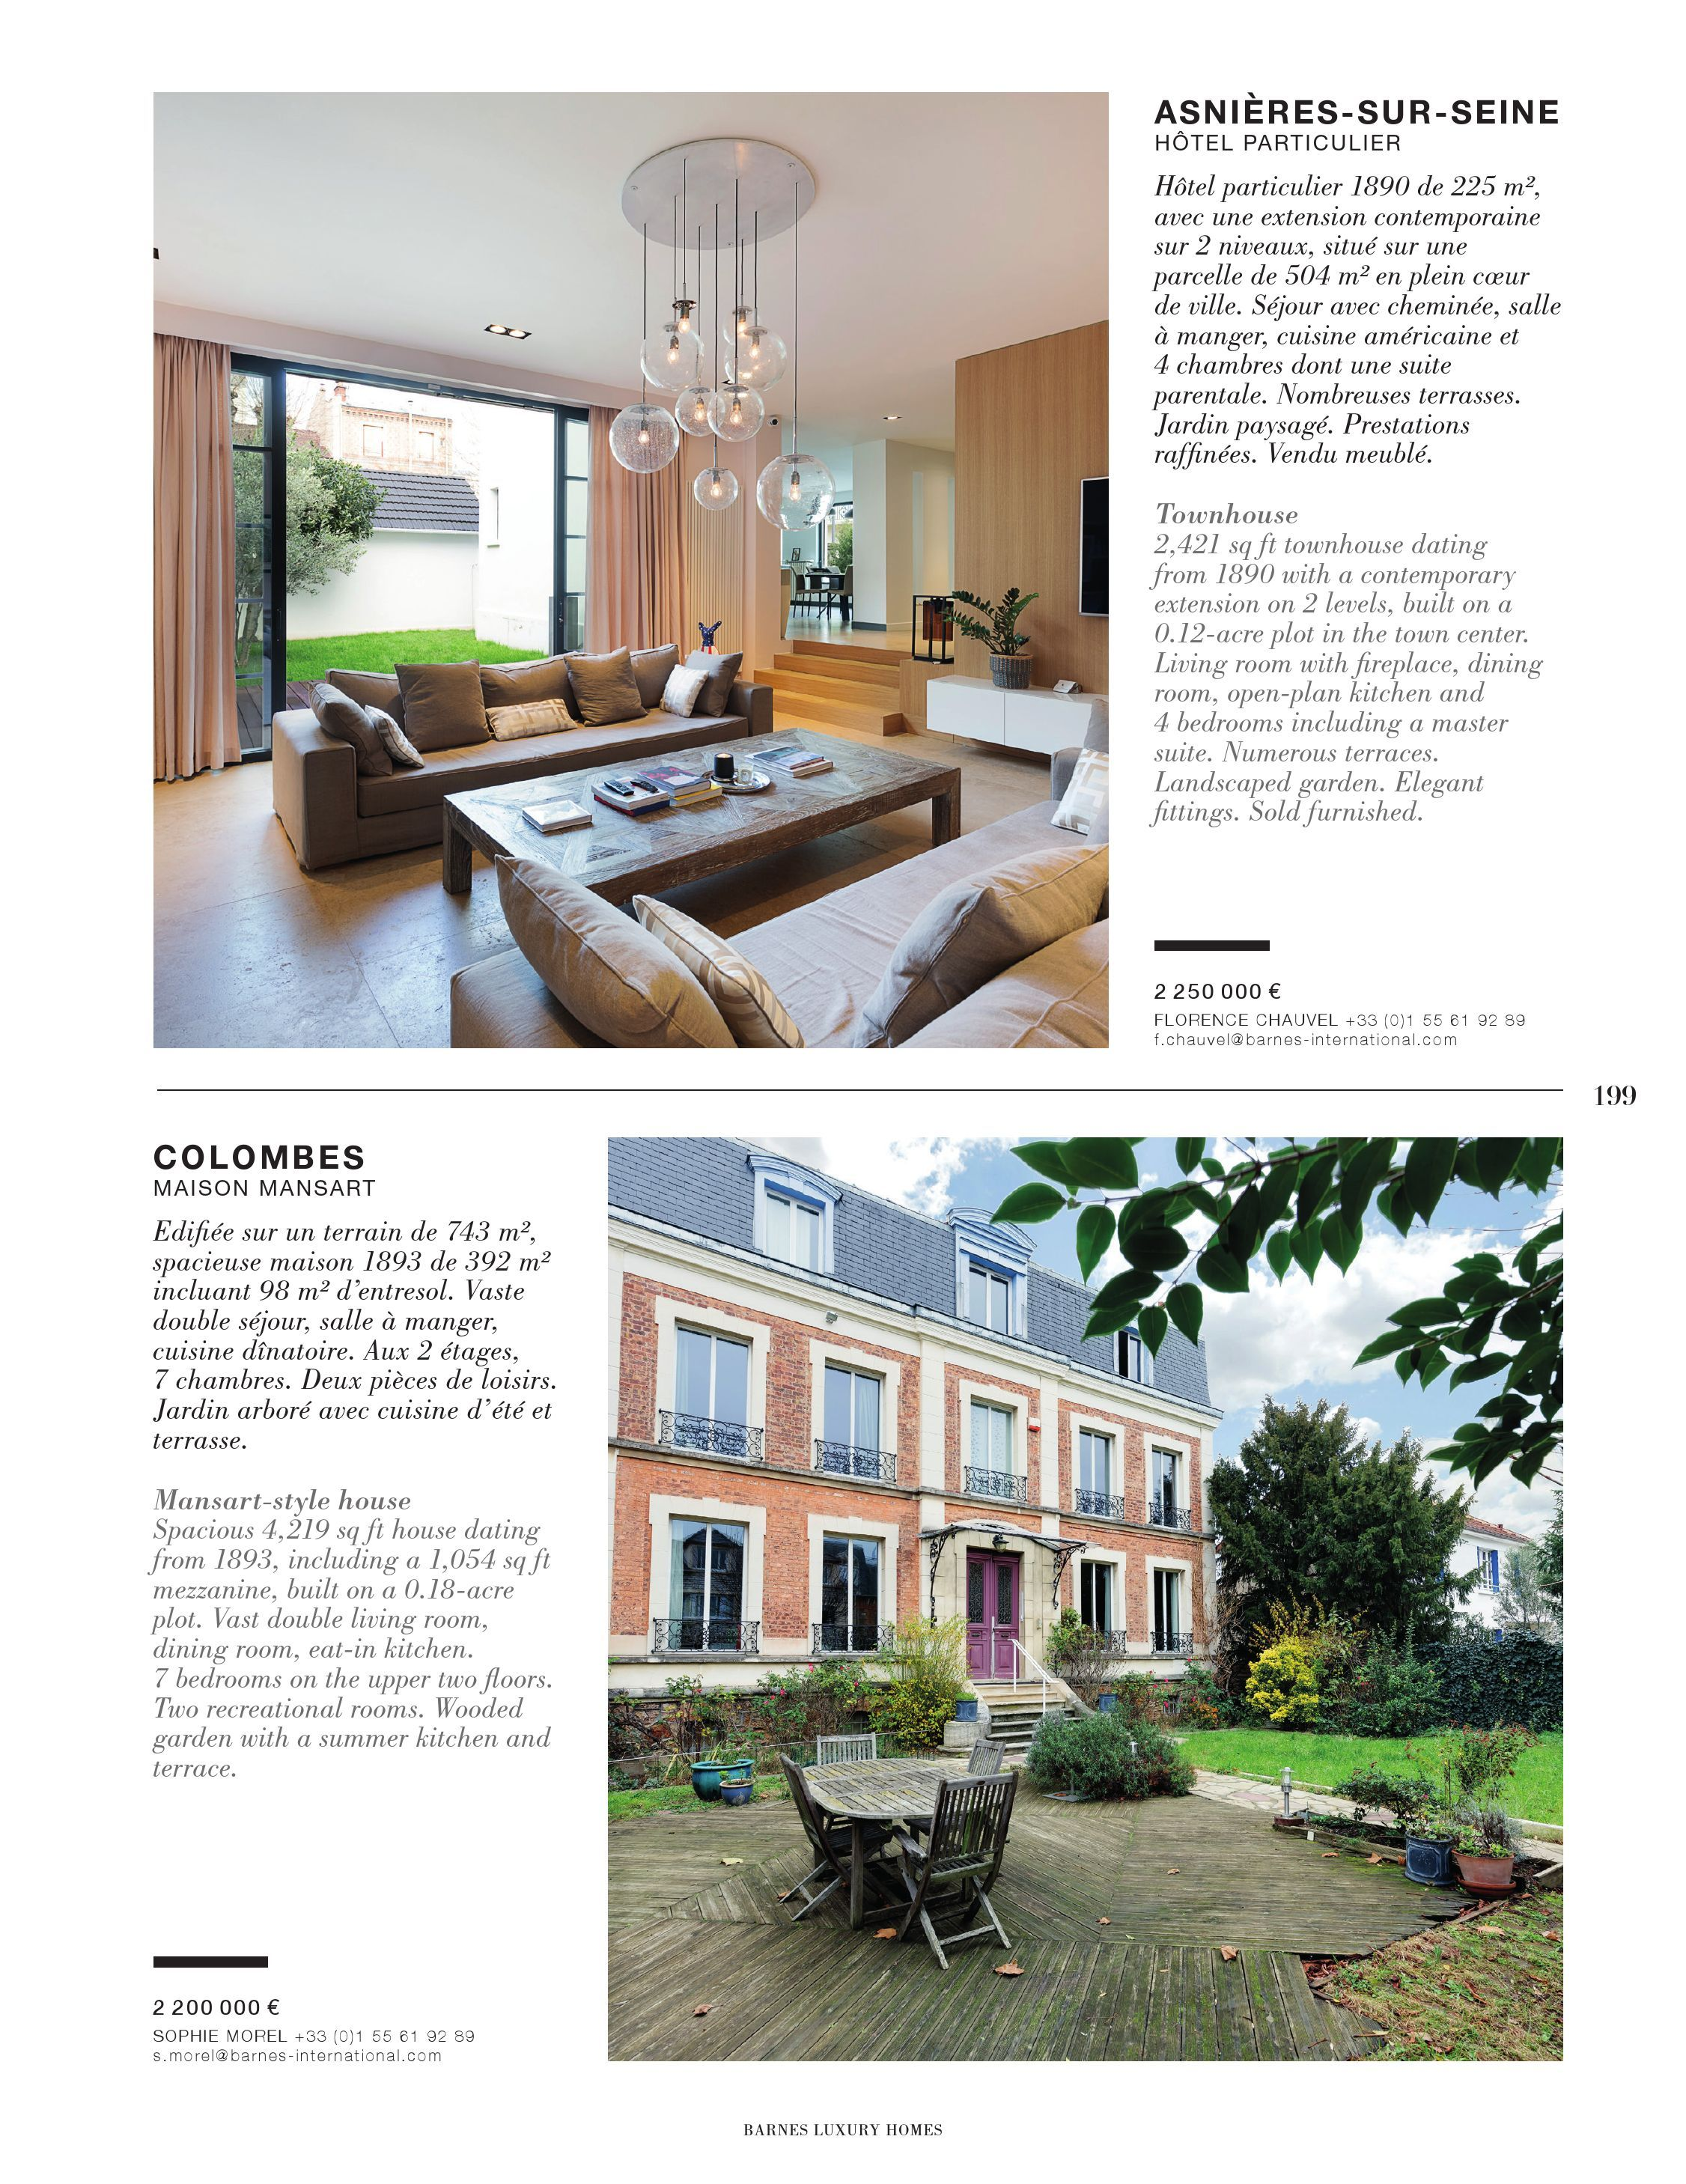 Cheminees Fontaine Pacé Barnes Luxury Homes 22 Pages 201 250 Text Version